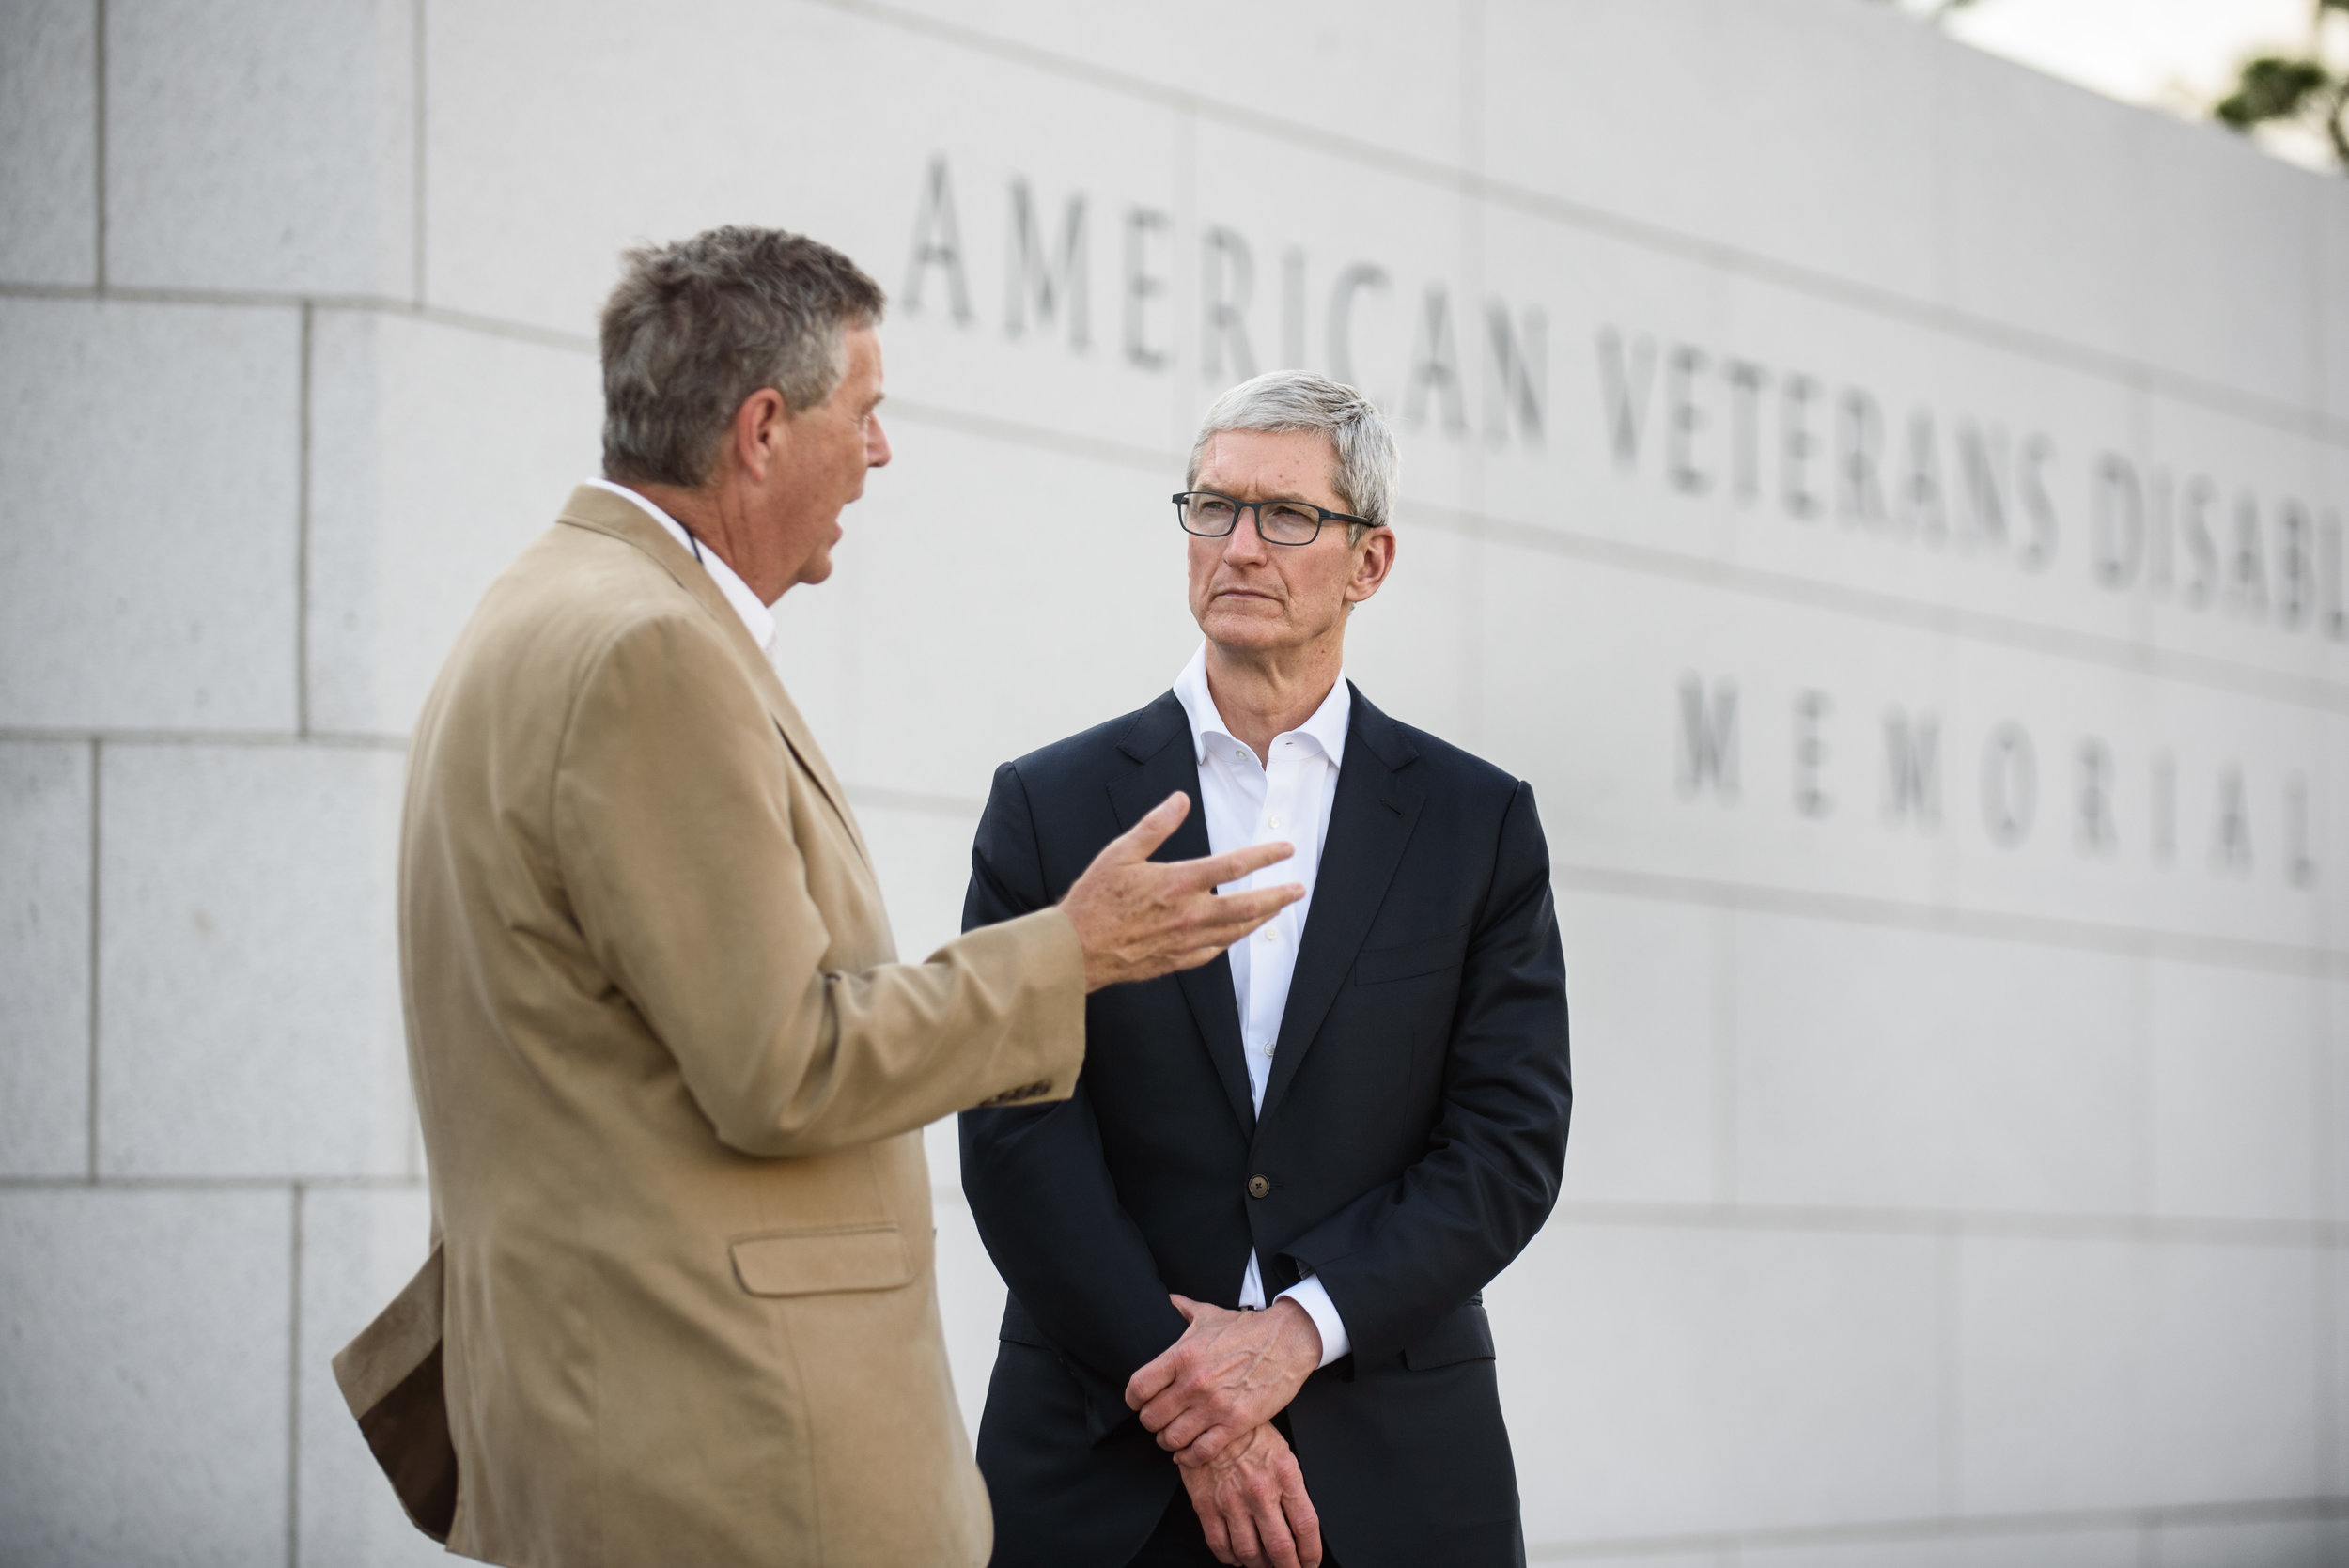 Apple CEO Tim Cook and Doug Hays in Washington, DC for Apple Inc.